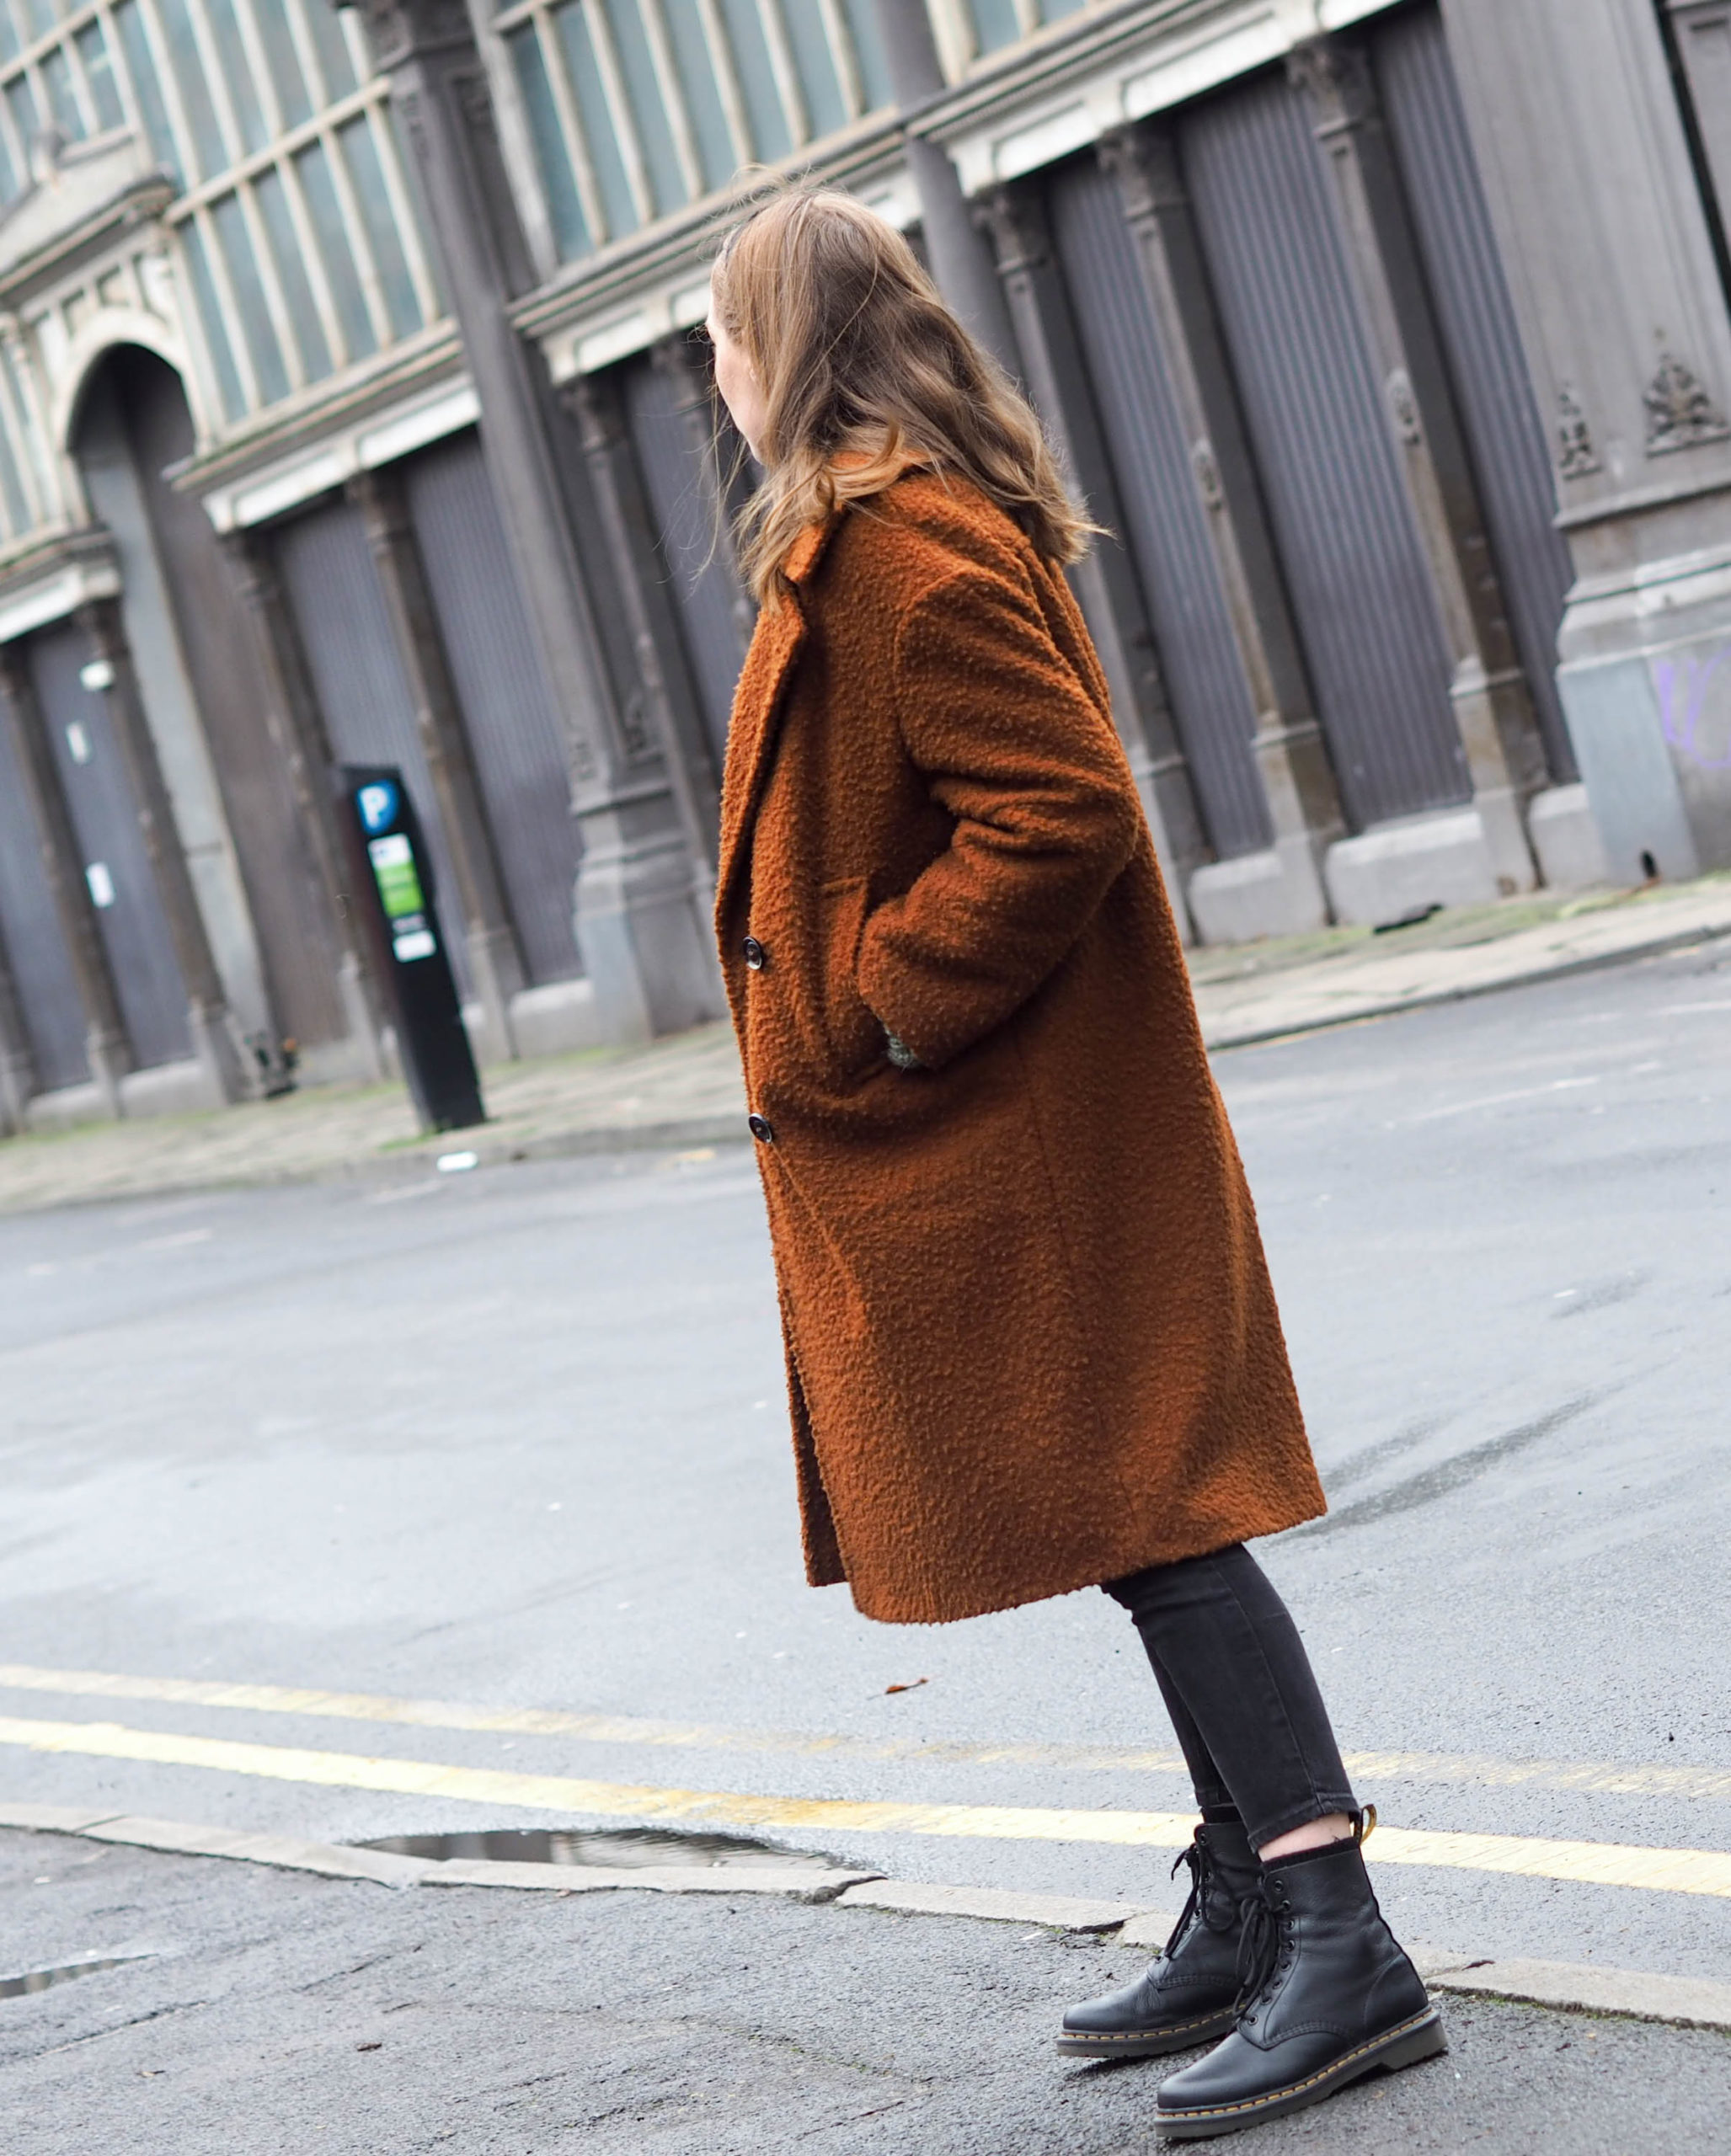 girl in Manchester wearing topshop wool coat and dr marten boots